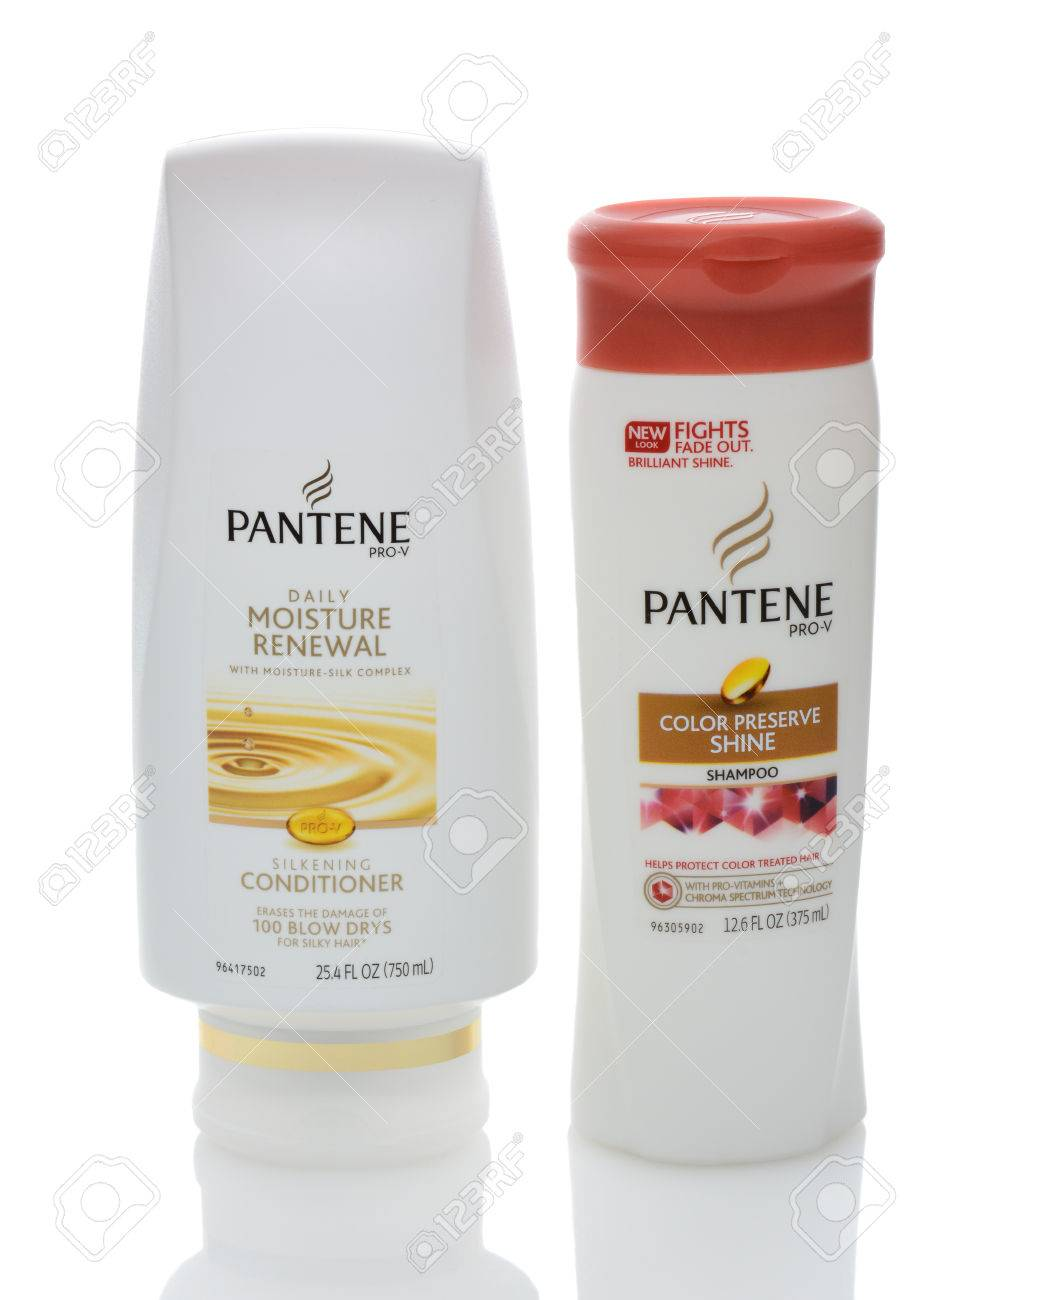 IRVINE, CA - DECEMBER 12, 2014: Two bottles of Pantene Hair Care Products. Introduced in Europe in 1947 by Hoffmann-La Roche of Switzerland, the name based on panthenol as a shampoo ingredient. - 35313086